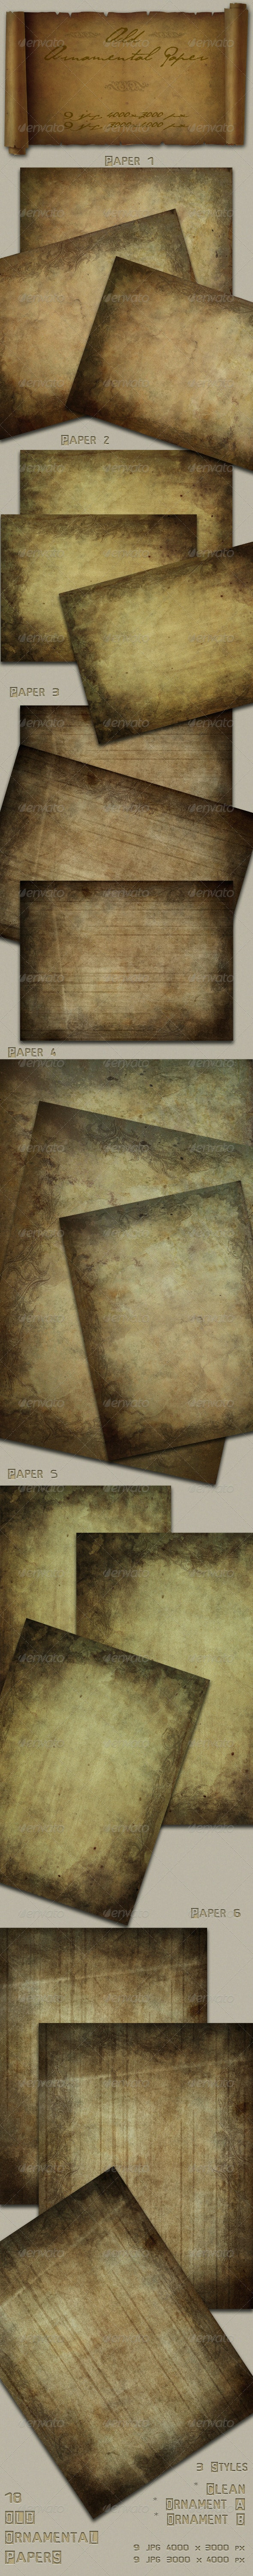 Old Ornamental Paper - Paper Textures